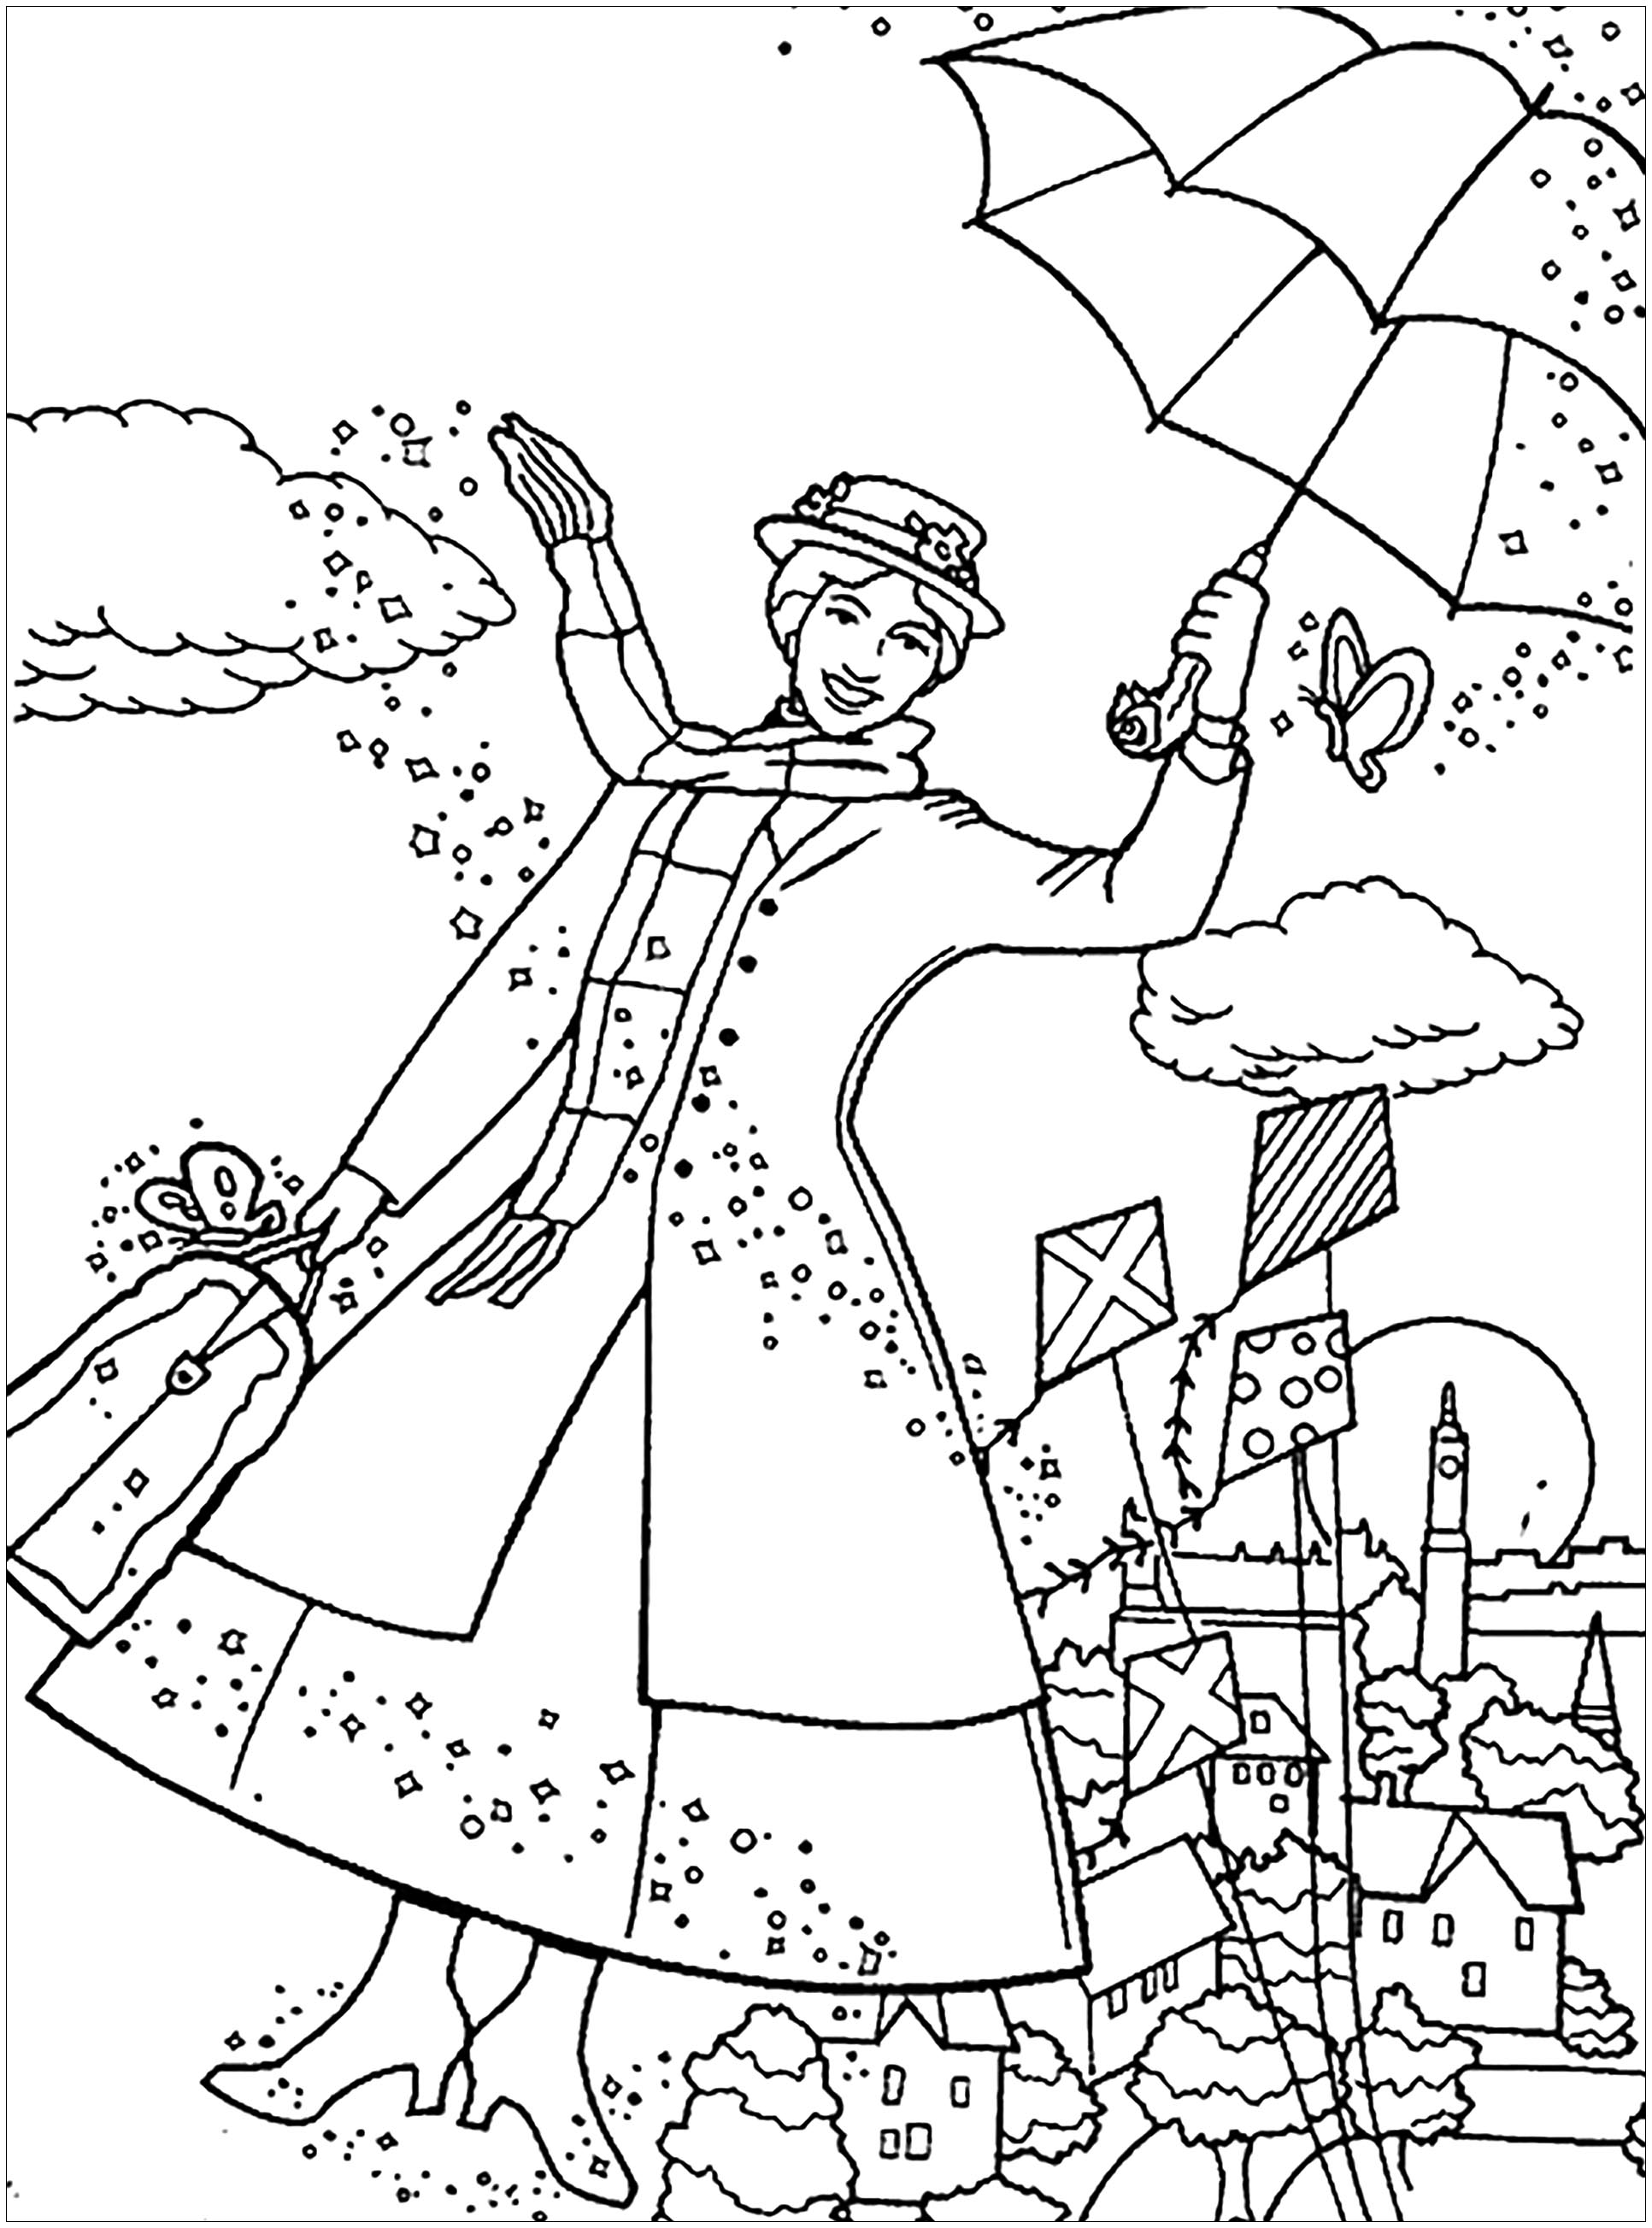 disney coloring pages mary poppins - photo#6